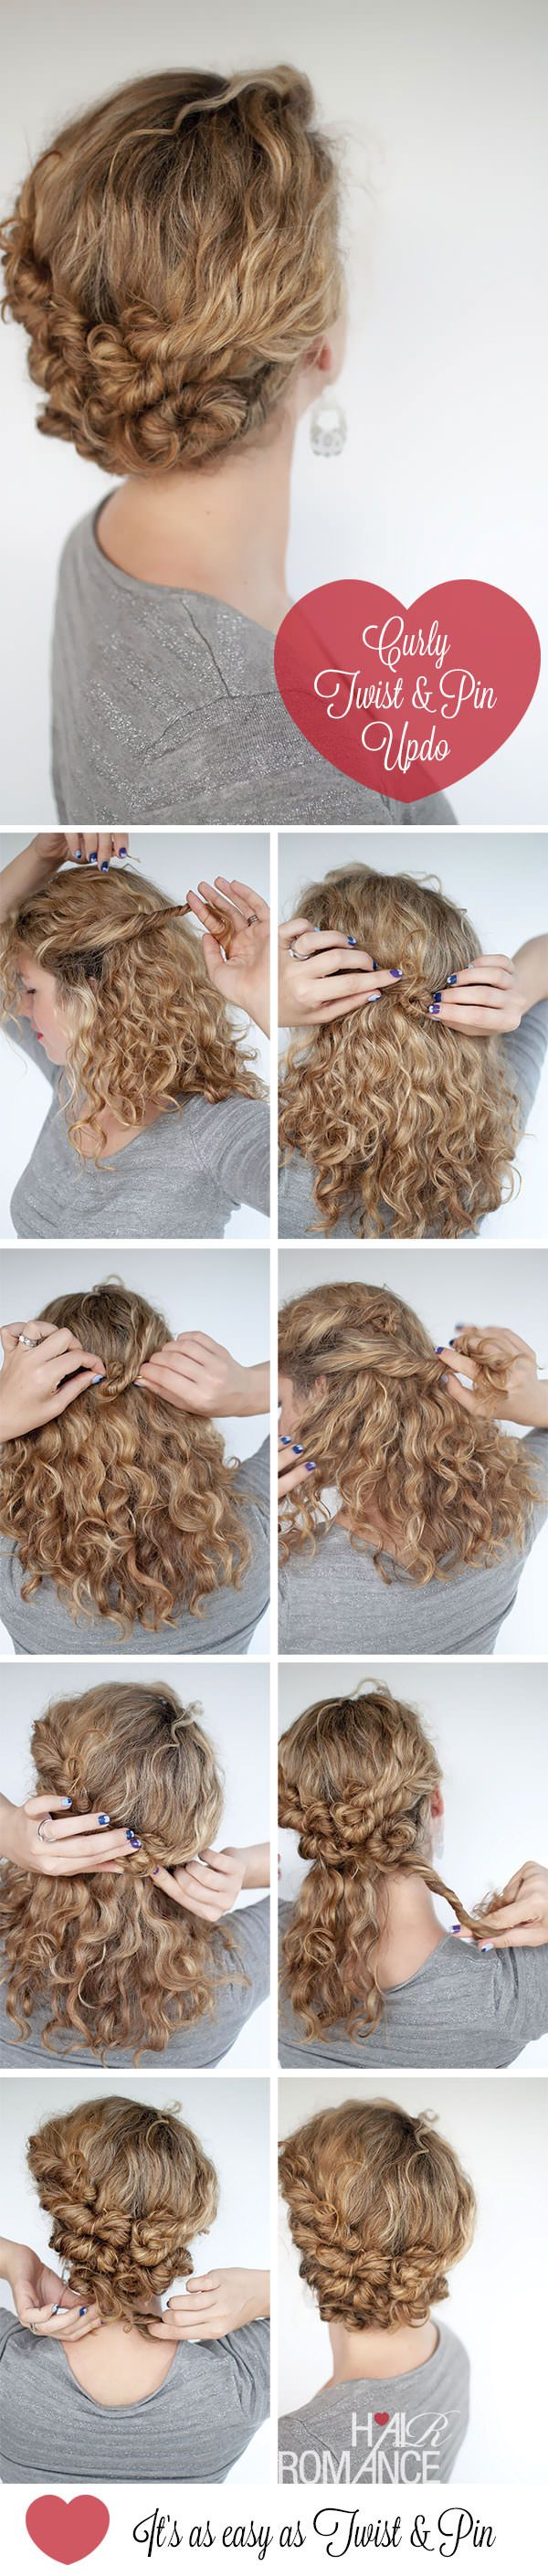 Twist and pin curly updo. Hairstyles. | Kenra Professional Inspiration